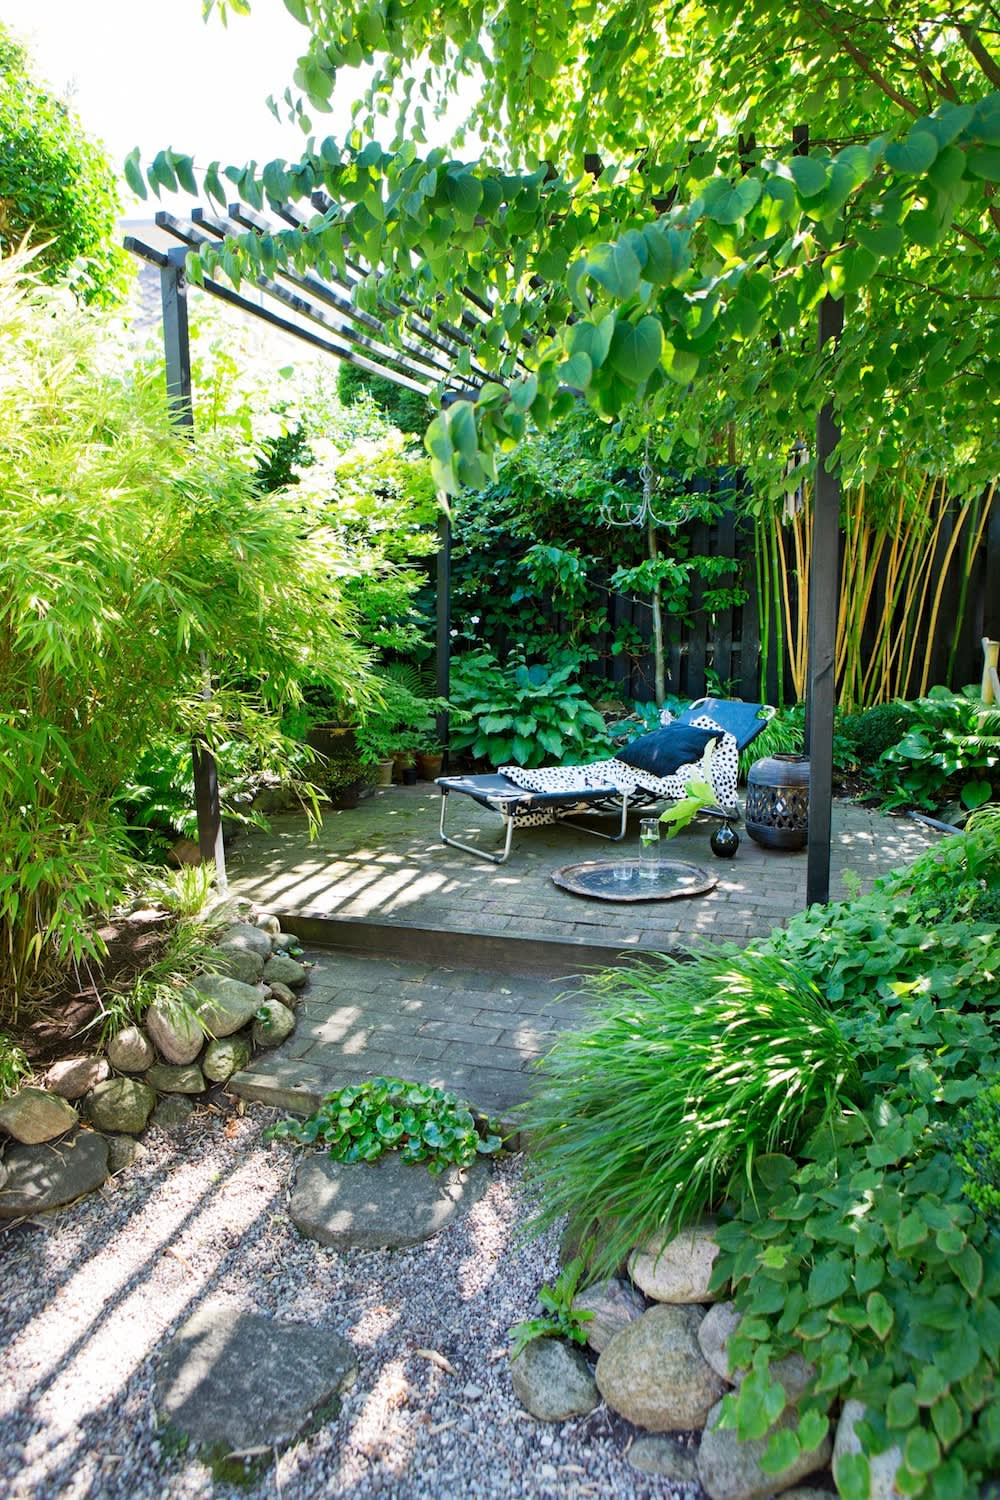 Upstairs is a paved patio surrounded by various kinds of bamboo.